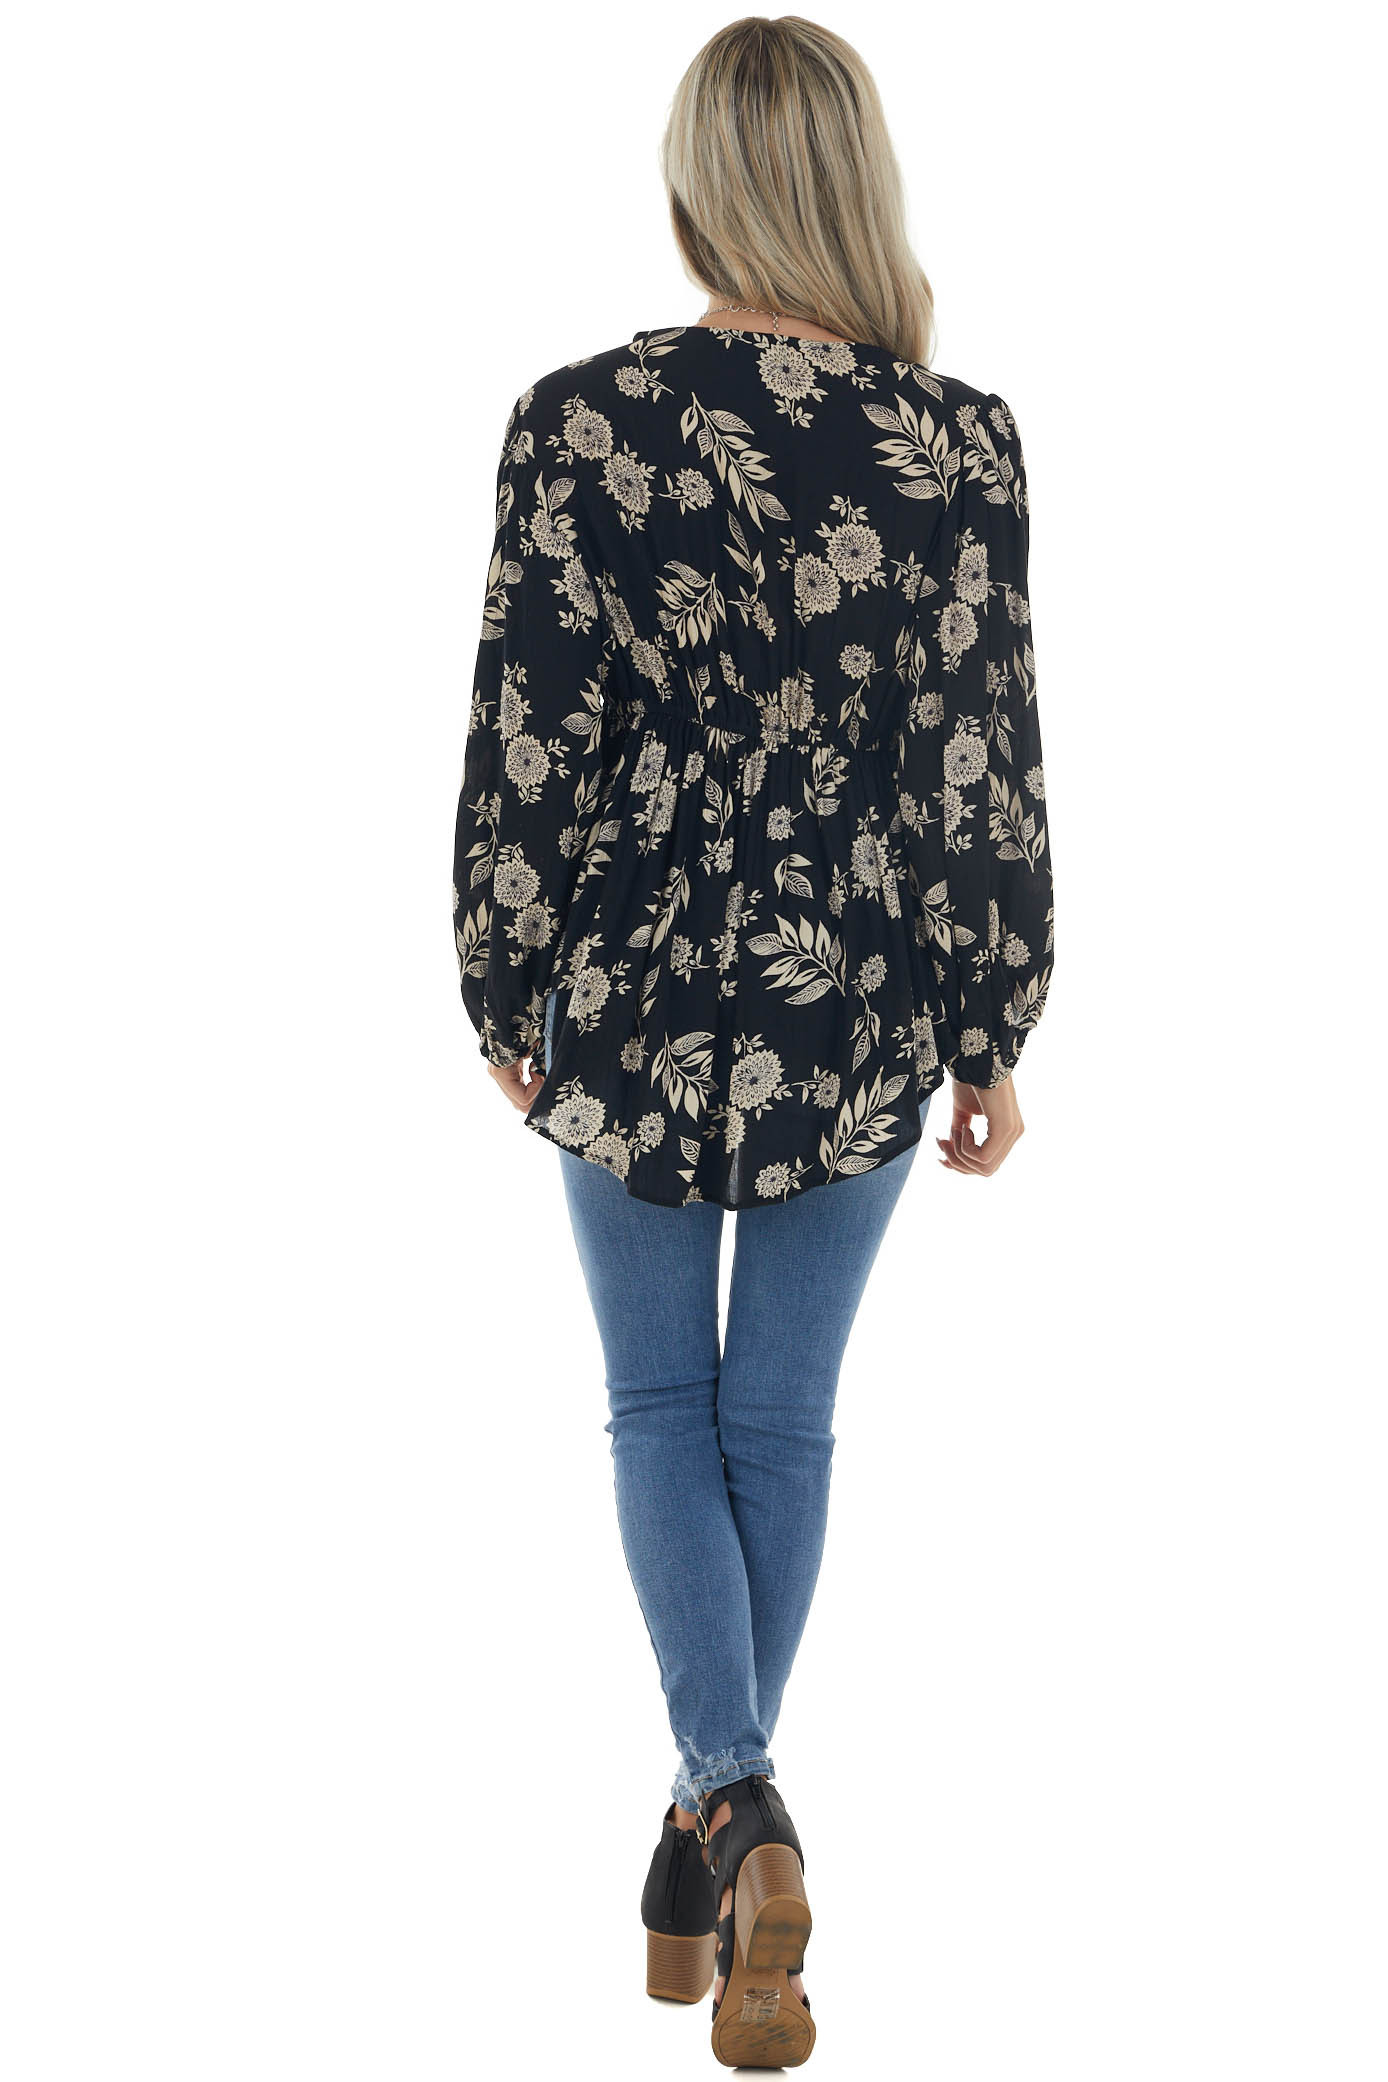 Black and Sand Floral Print Long Sleeve Top